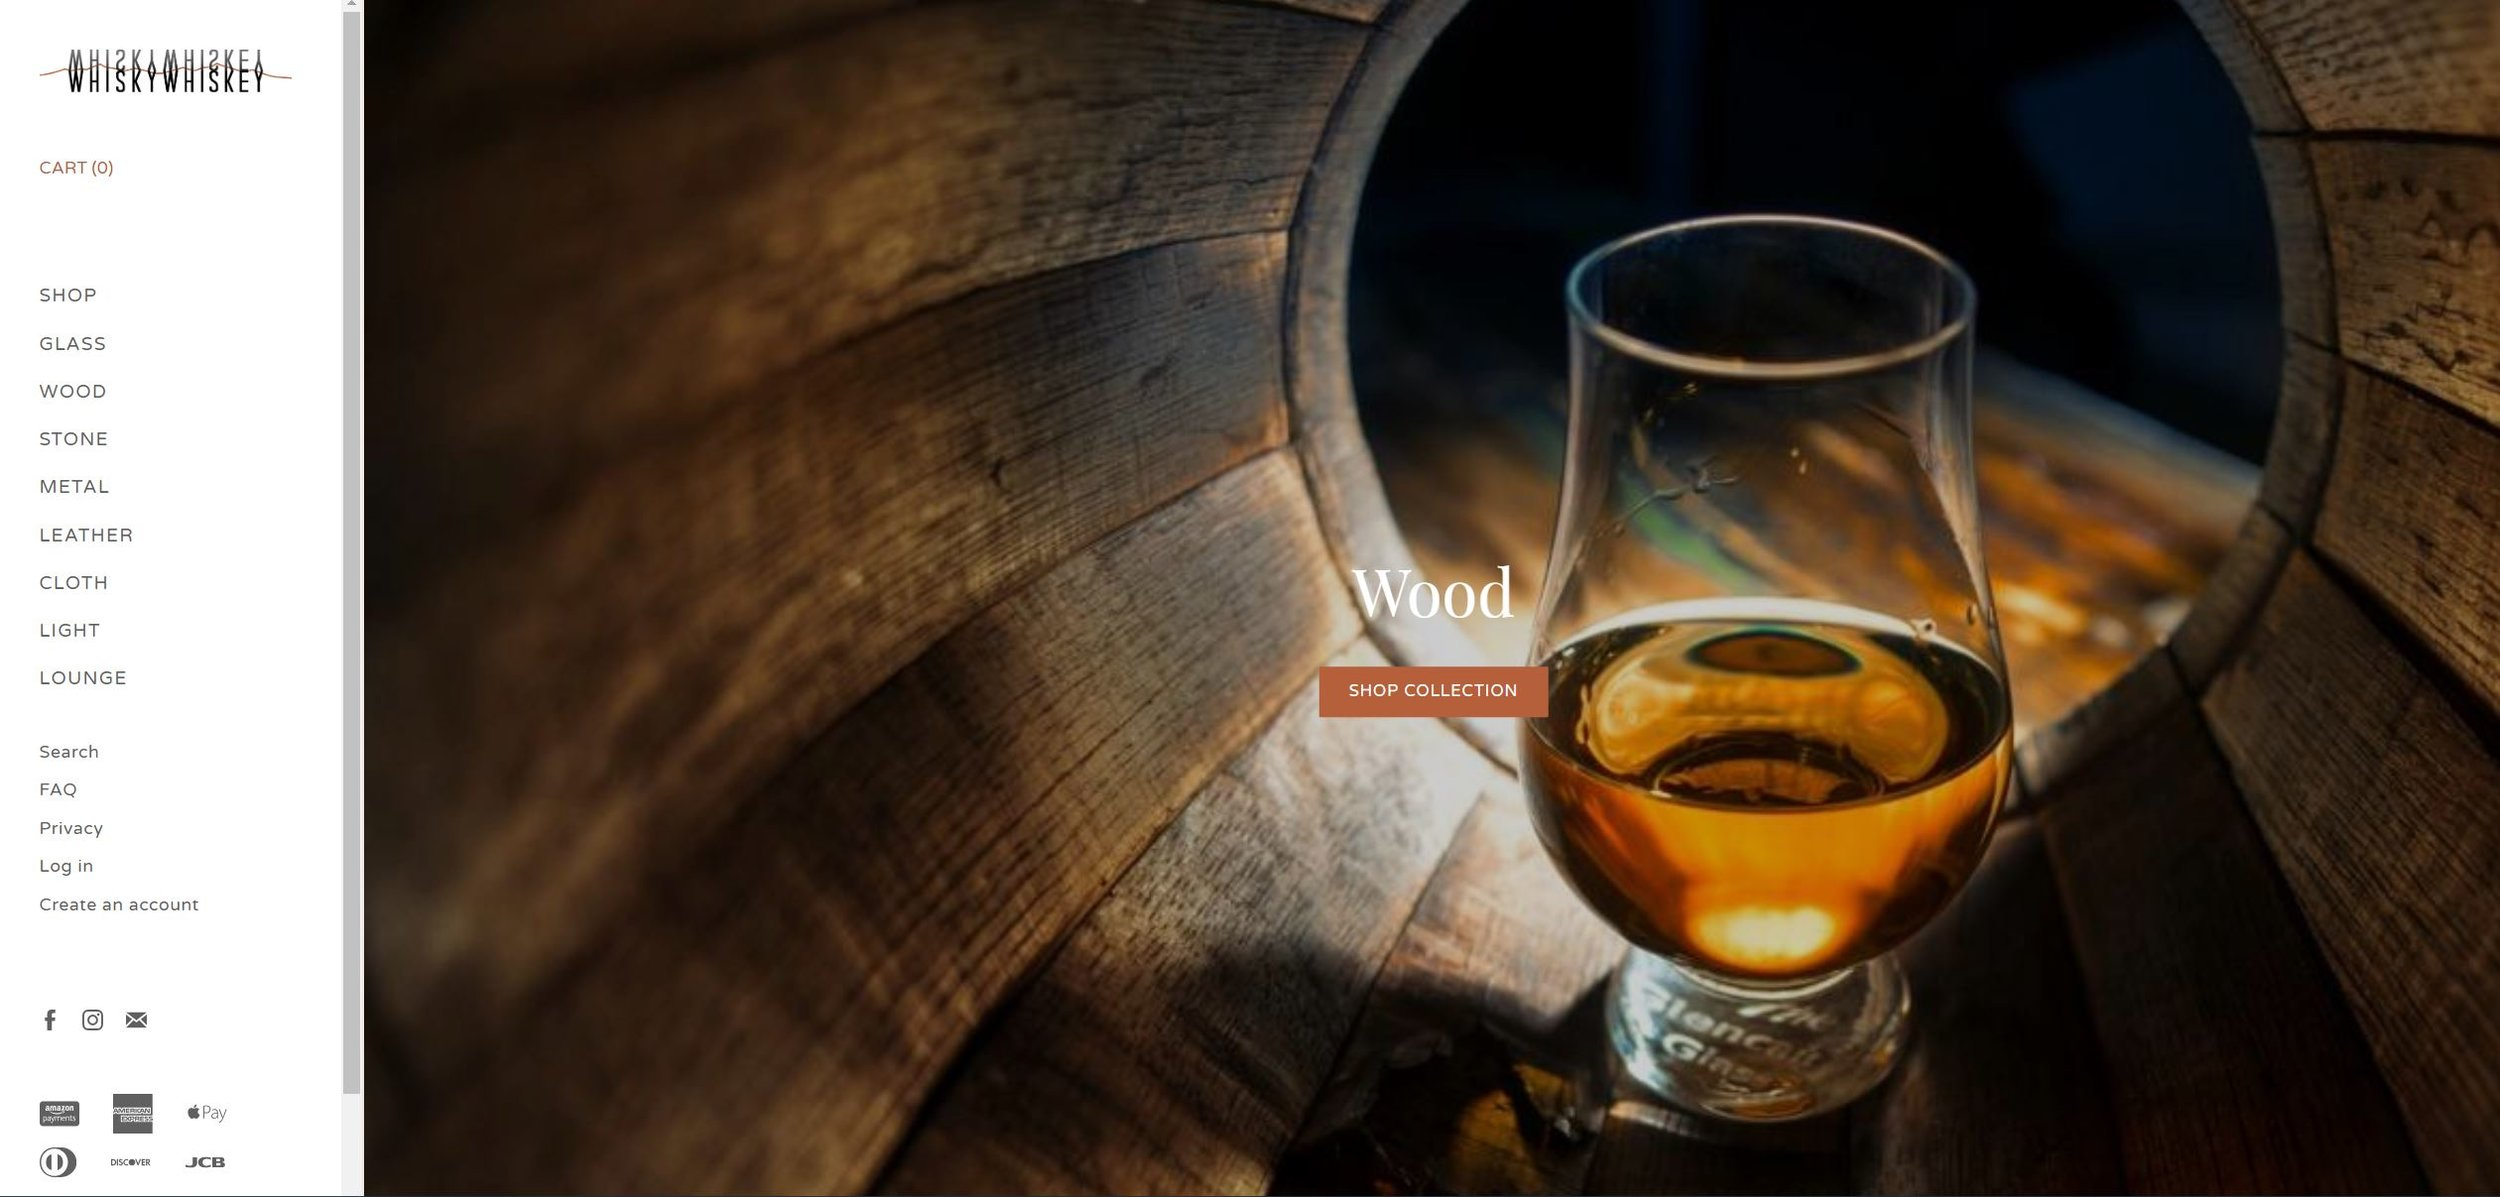 WEB DEVELOPMENT| BRANDING | SEO | E-COMMERCE | SOCIAL MEDIA| MARKETING |    whiskywhiskey.co